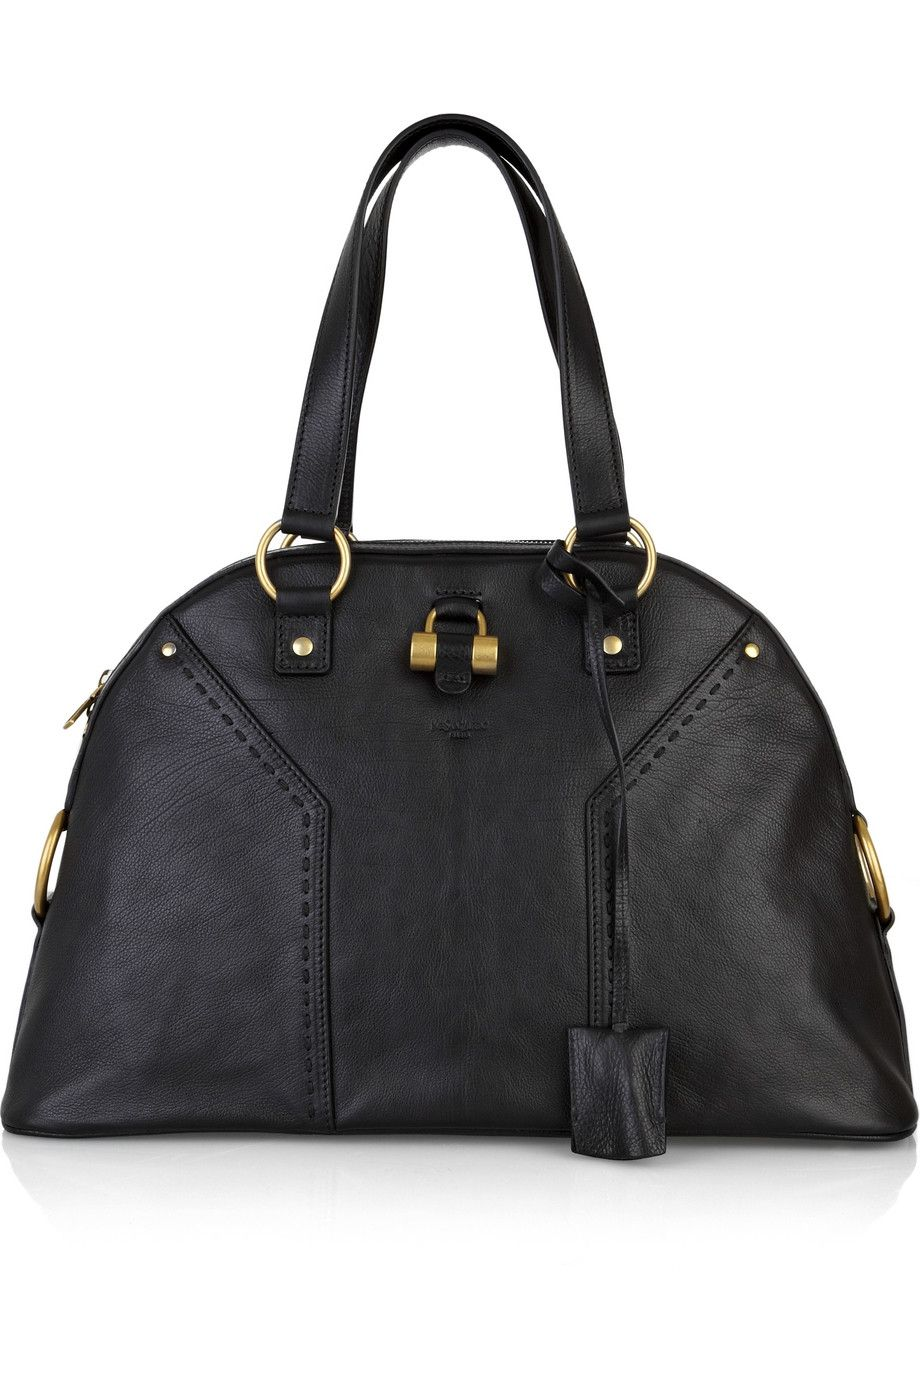 every girl must have a muse YVES SAINT LAURENT Muse Large leather tote  £1,282.51 b673d46e54